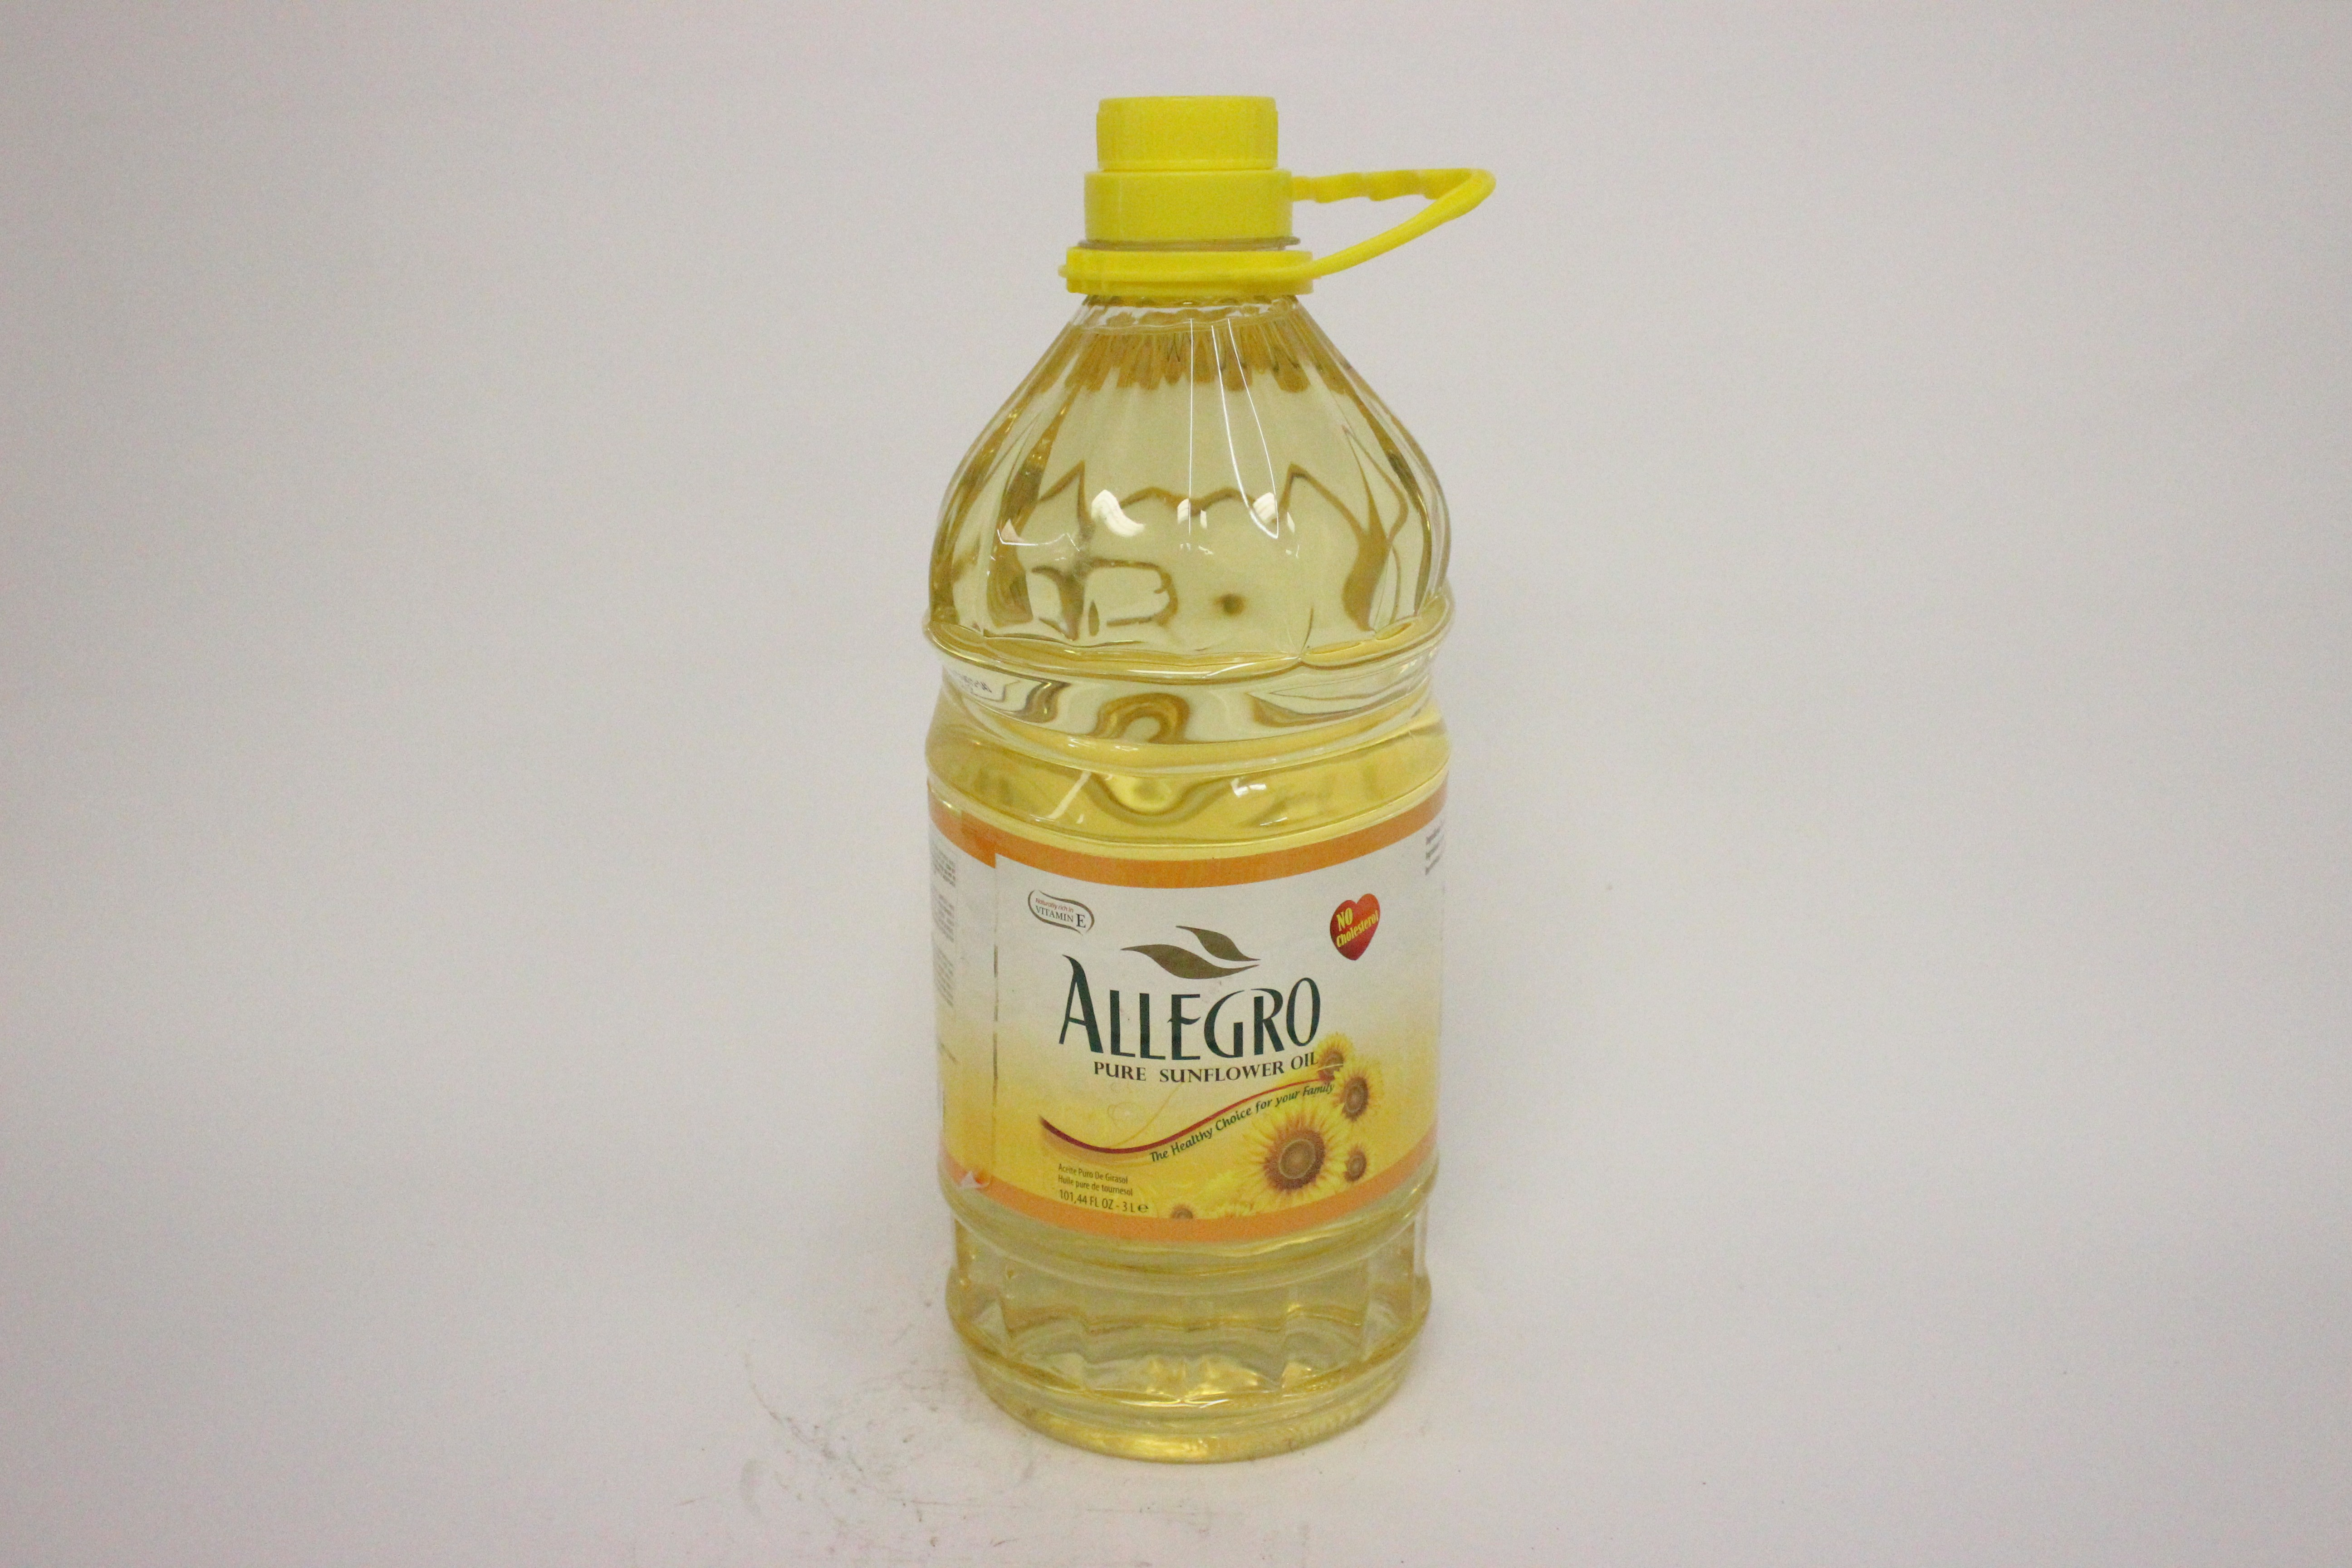 Allegro Pure Sunflower Oil 3 L